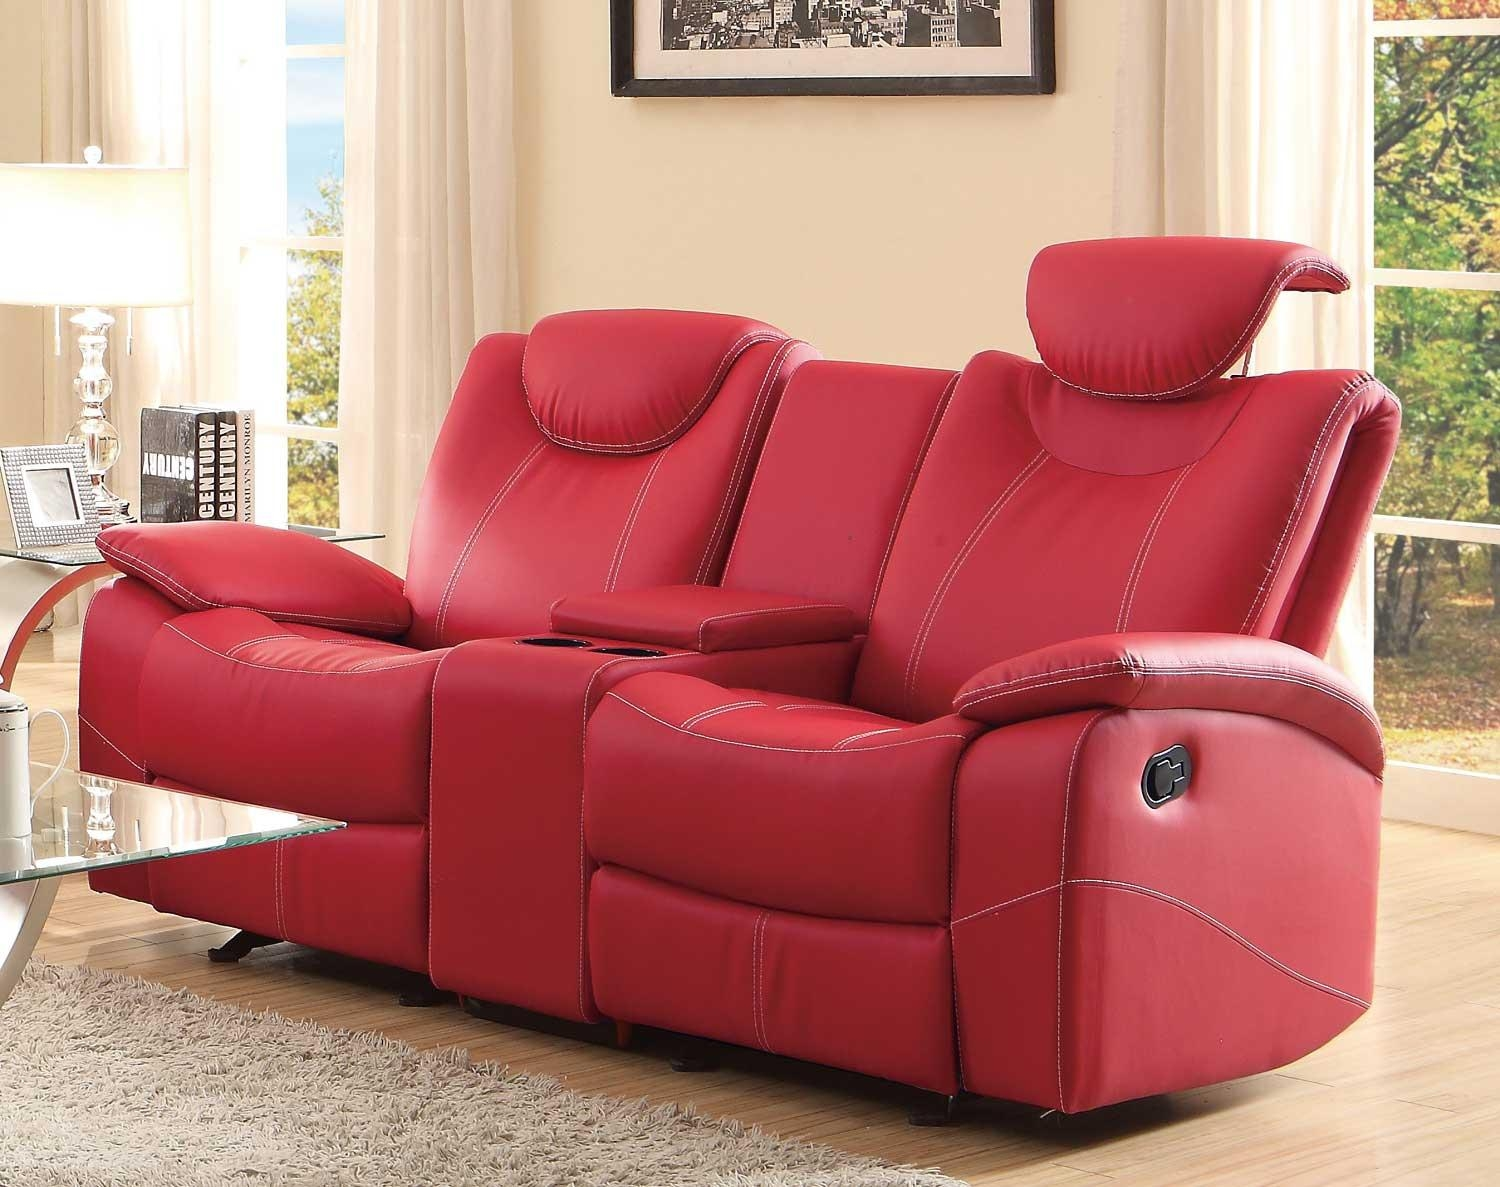 Sofas Center : Double Reclinerofa With Console Reclining In Sofas With Console (Image 12 of 20)